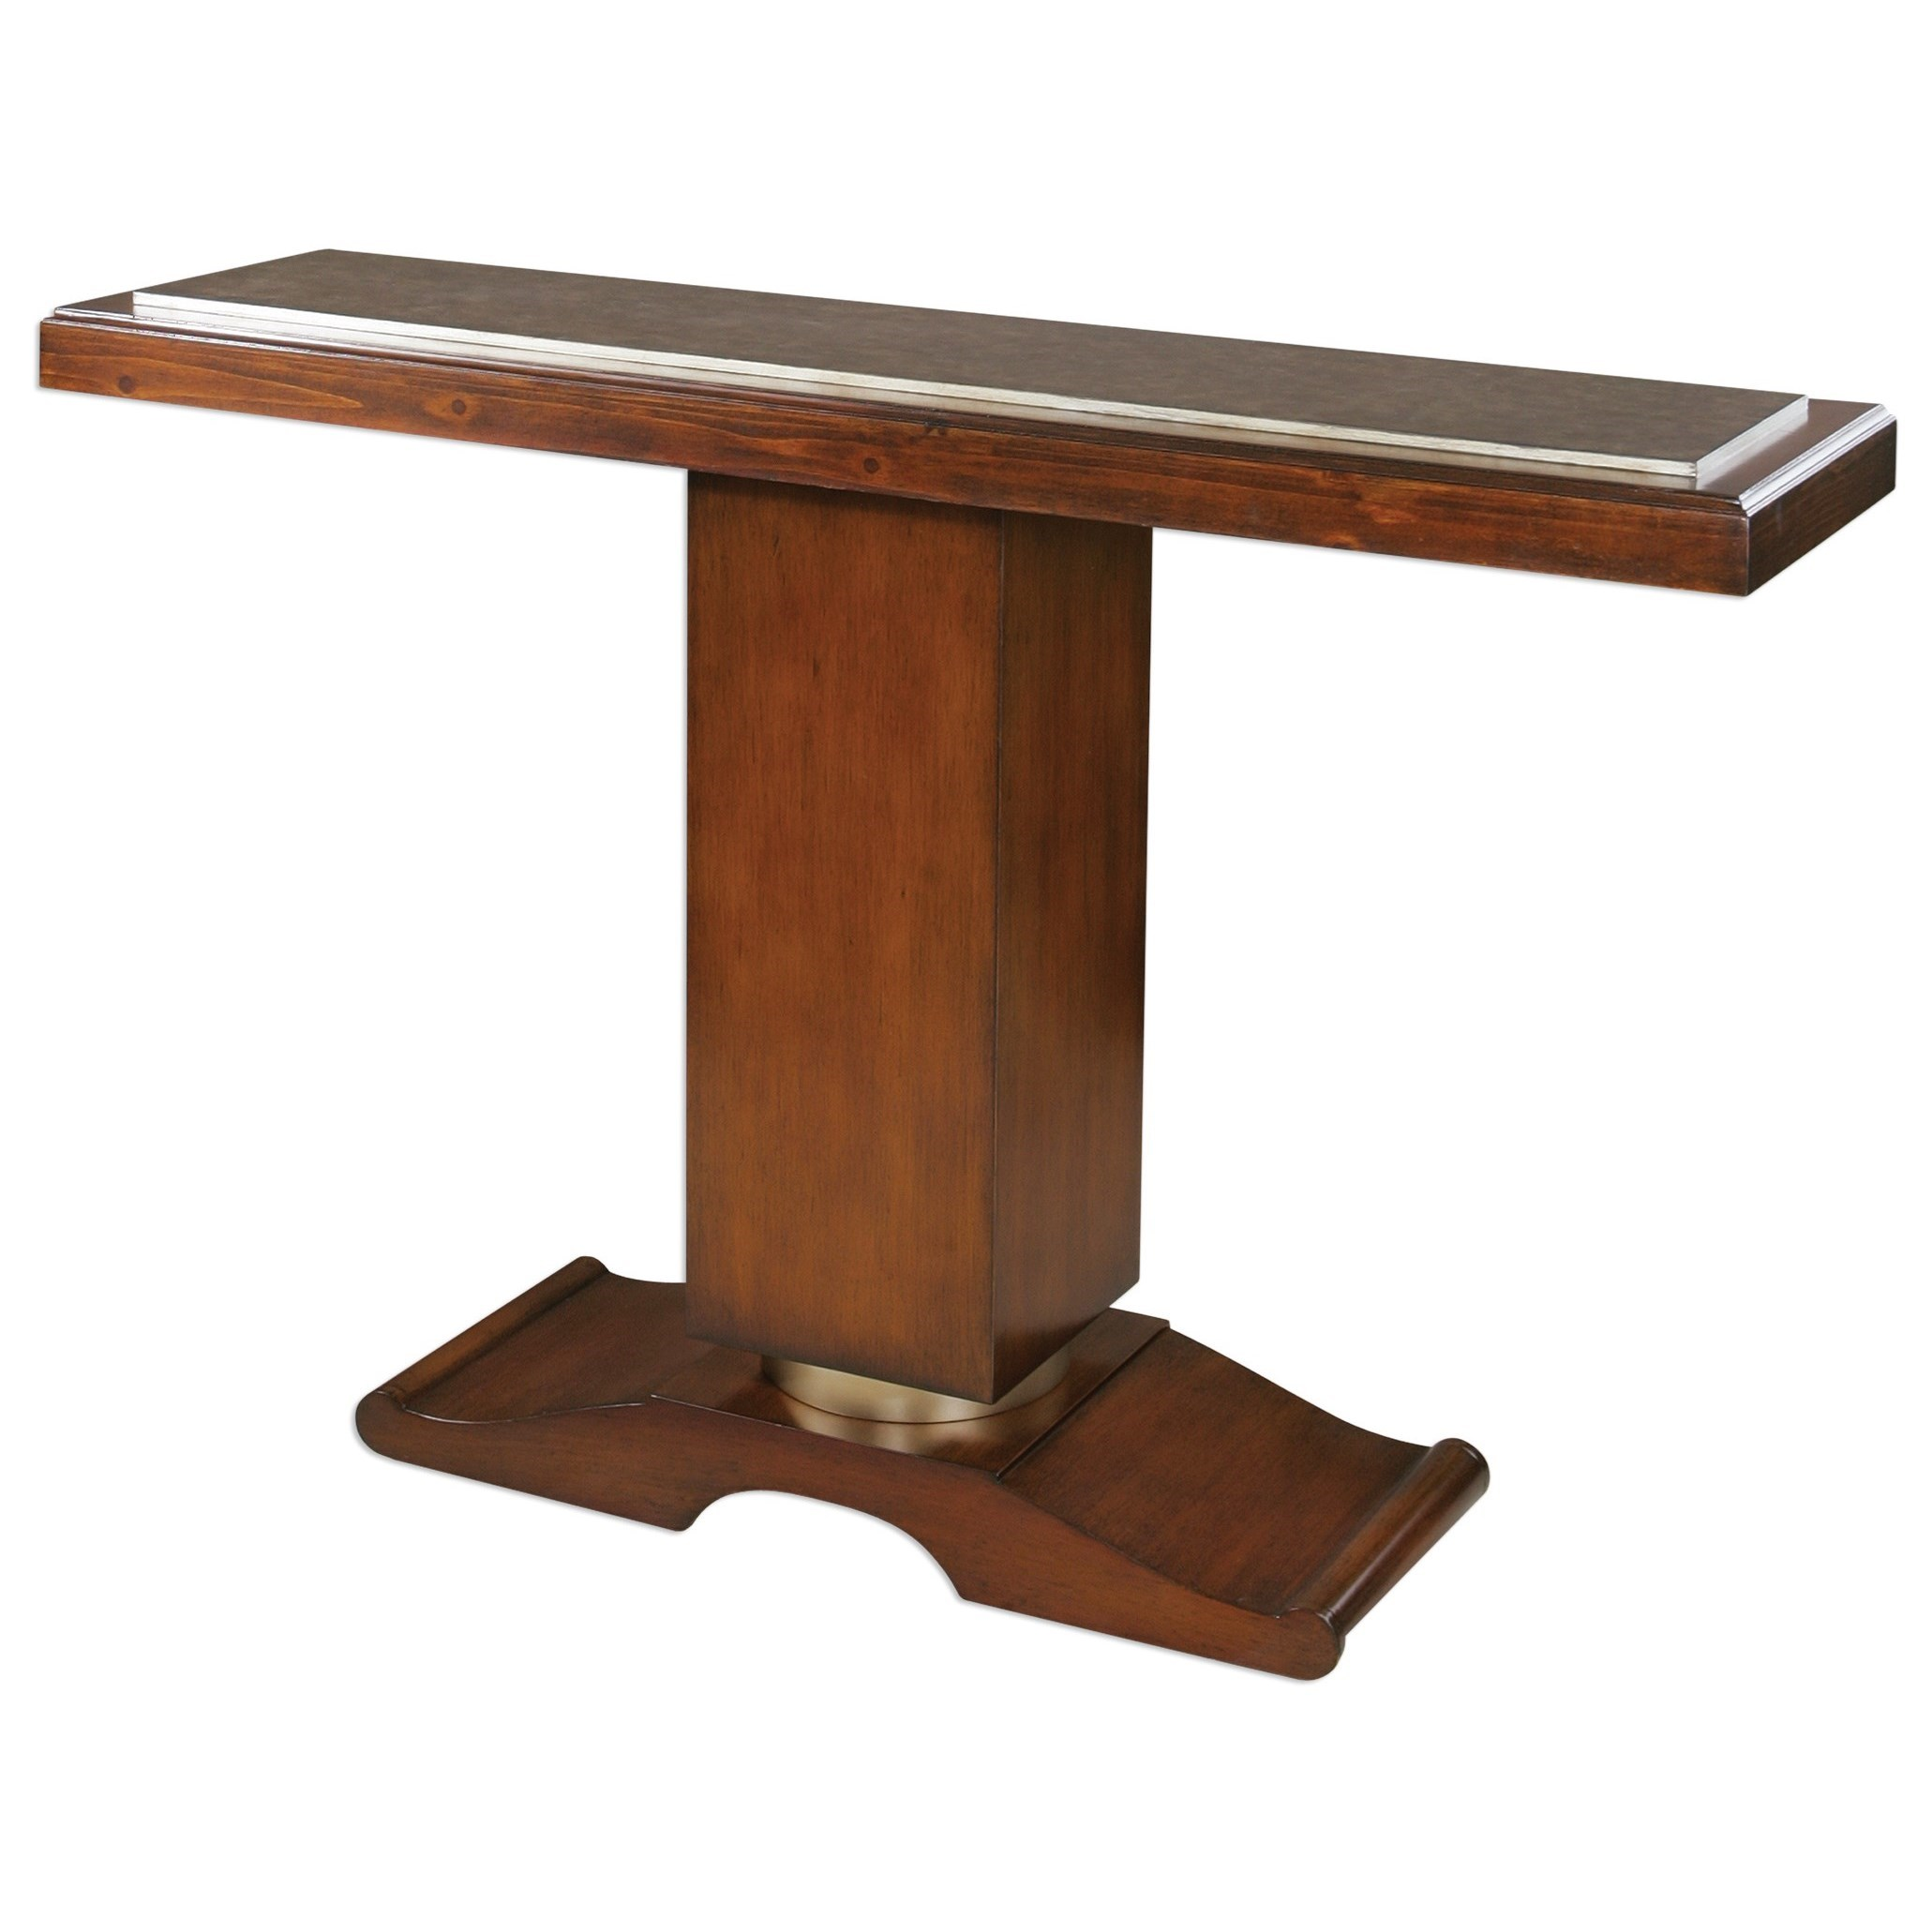 Uttermost Accent Furniture Taniel Pedestal Console Table - Item Number: 24588